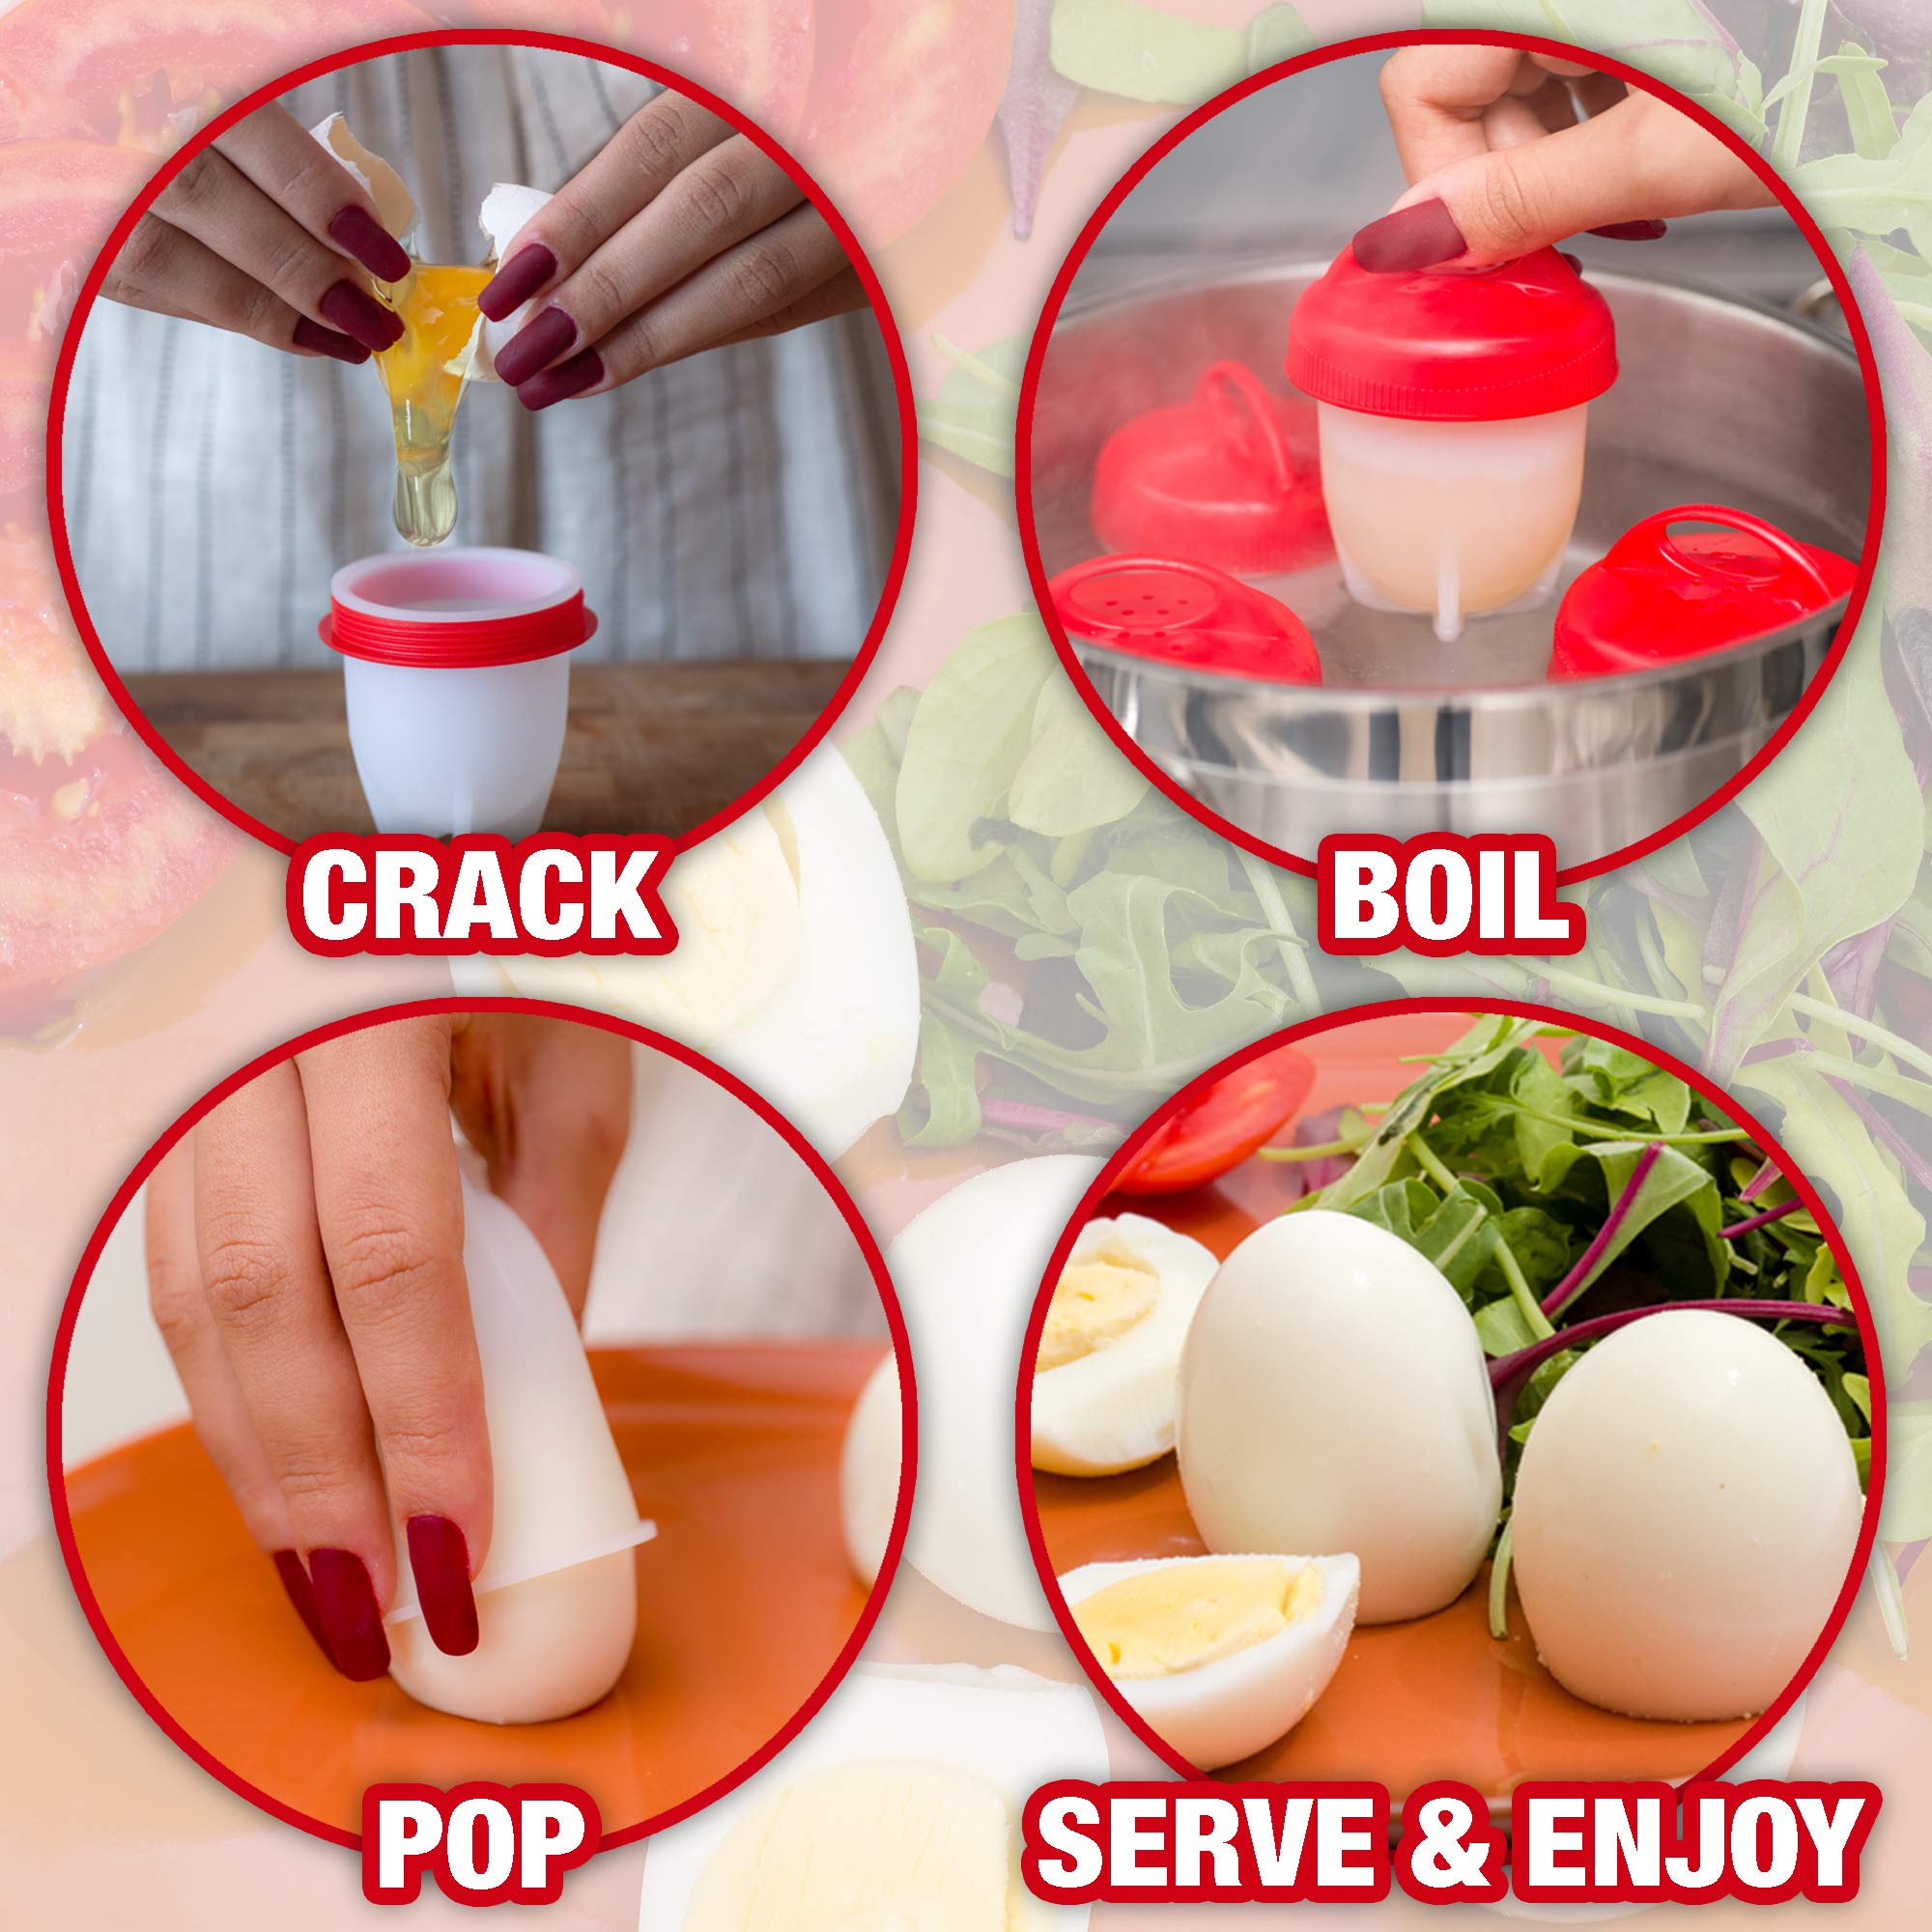 Egg Cooker Cups - for Hard and Soft Boiled Eggs Without Shells. Set of 6 Made from Non-Stick, BPA Free Silicone. As Seen on TV. Easy to Use. Bonus Recipe eBook. Delicious Healthy Egg Dishes Every Time